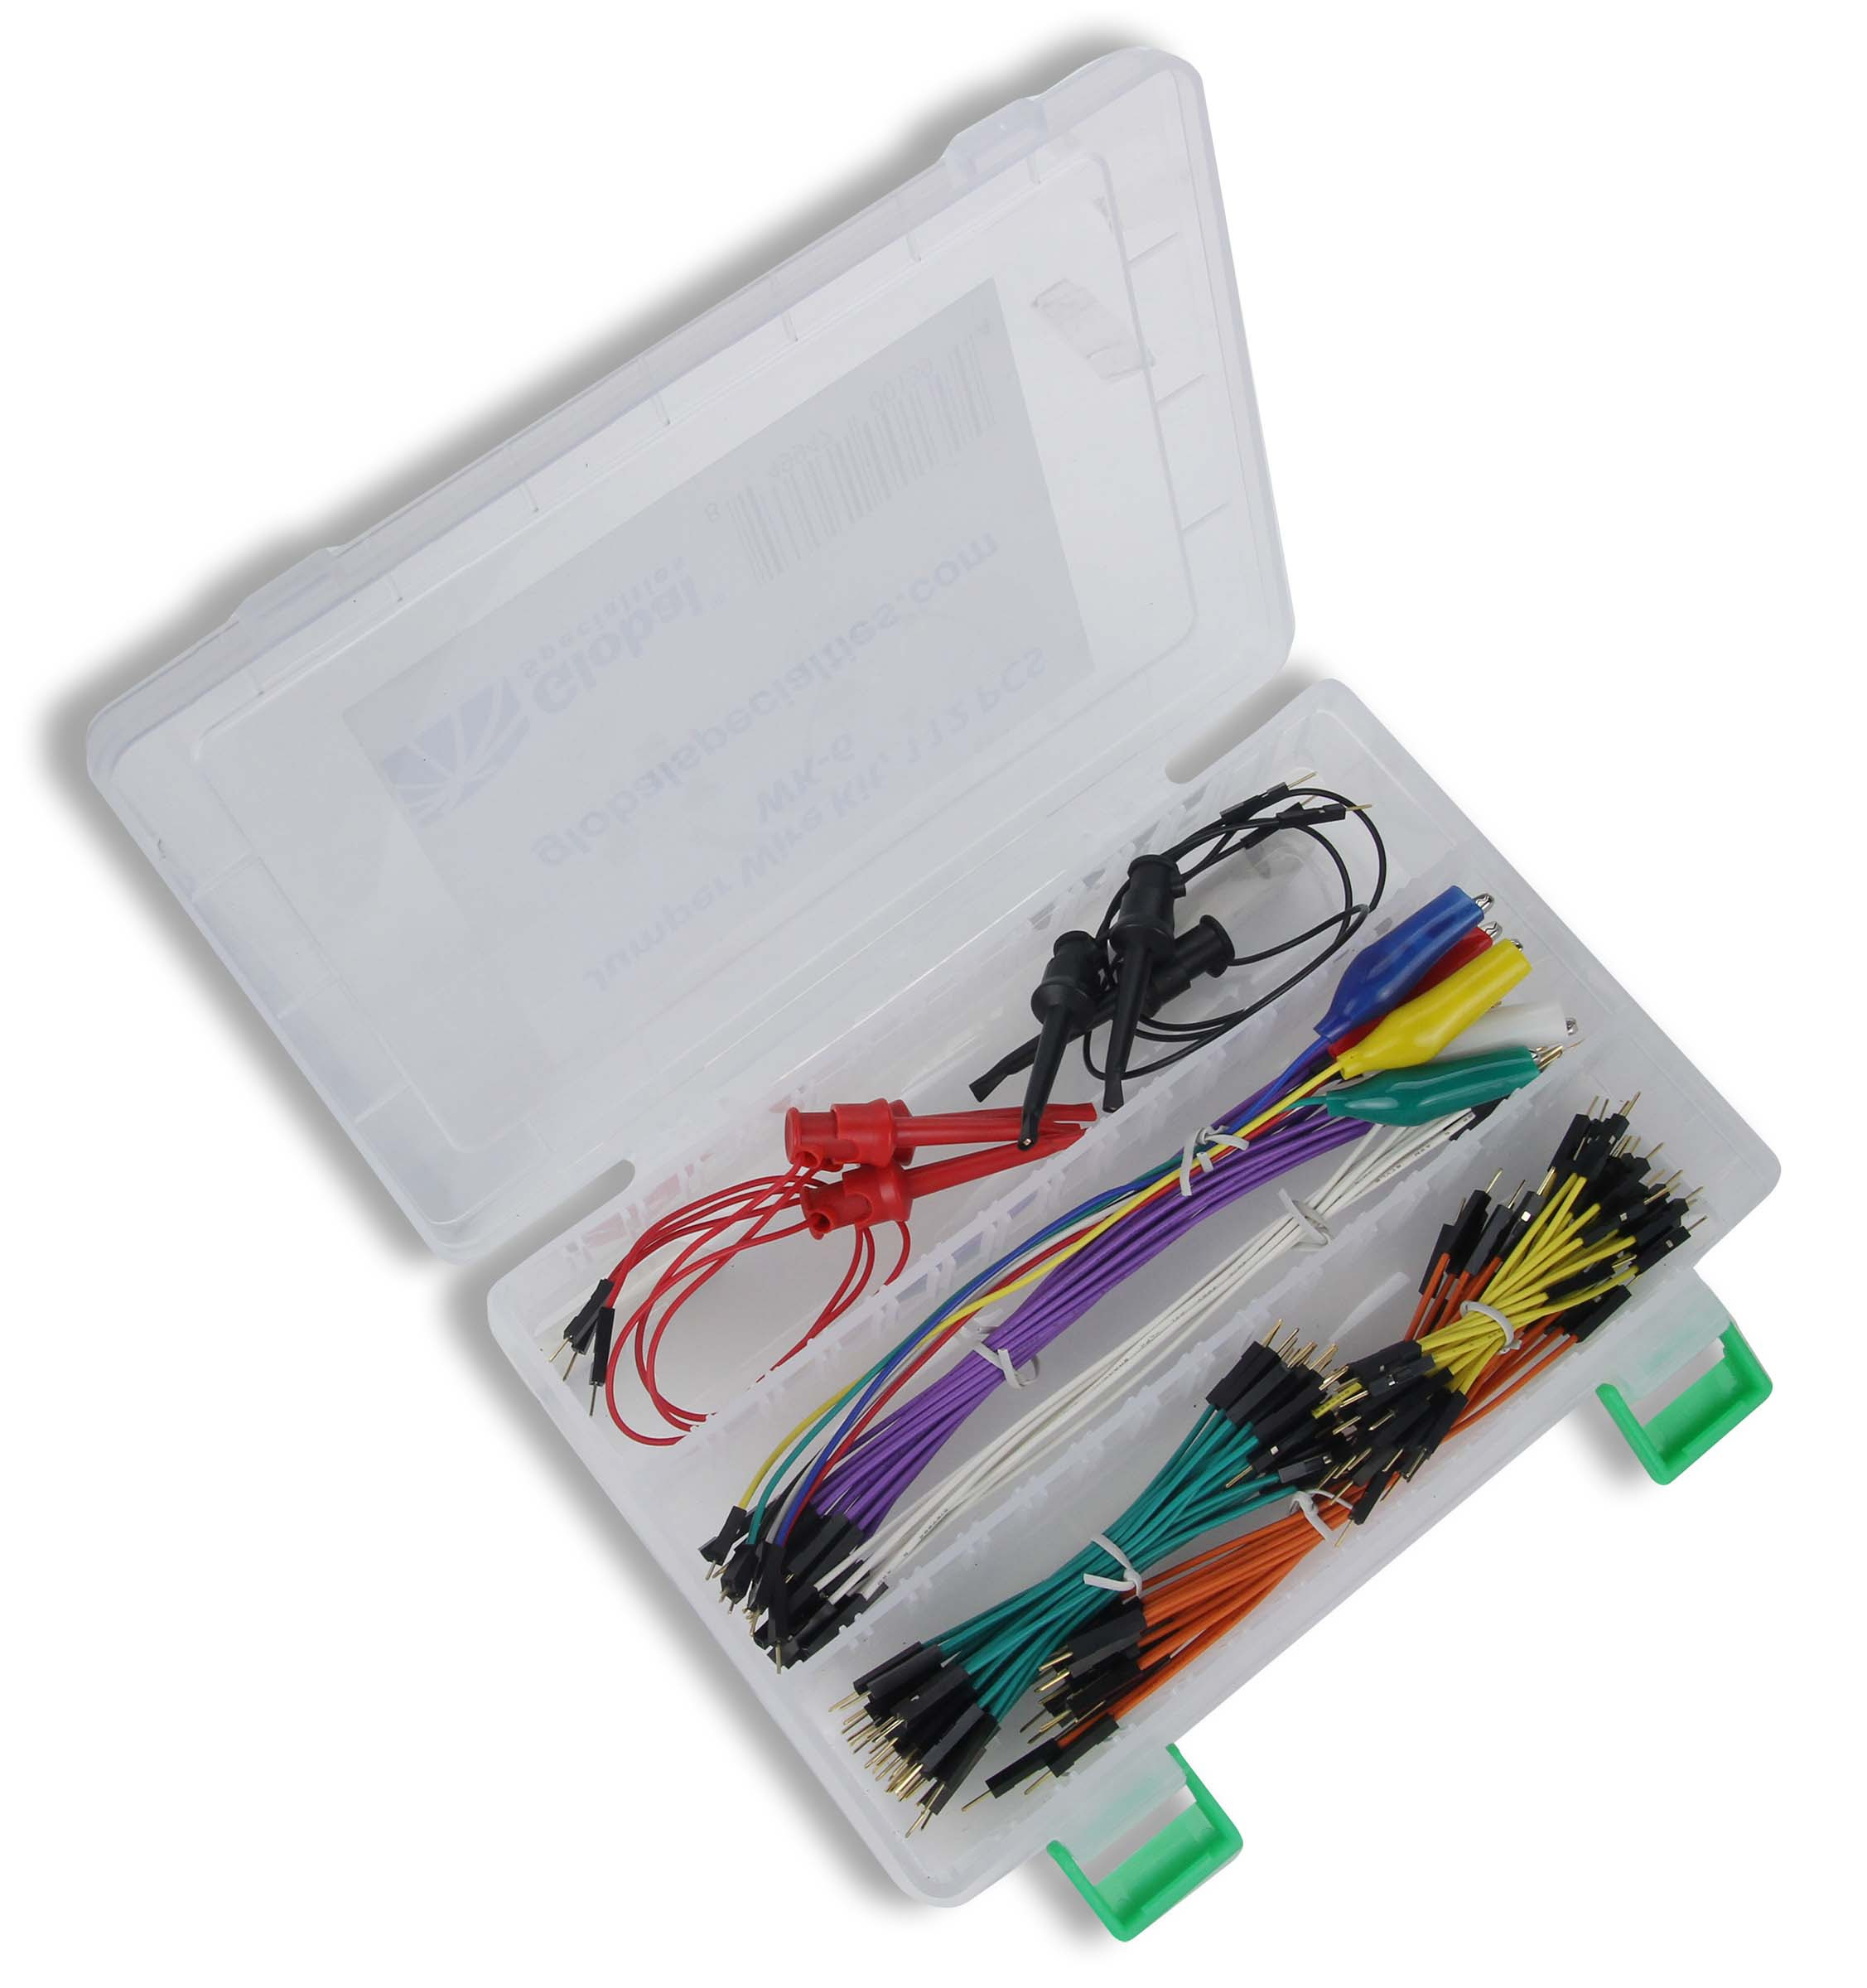 WK-6: Jumper Wire Kit, 112 Pieces